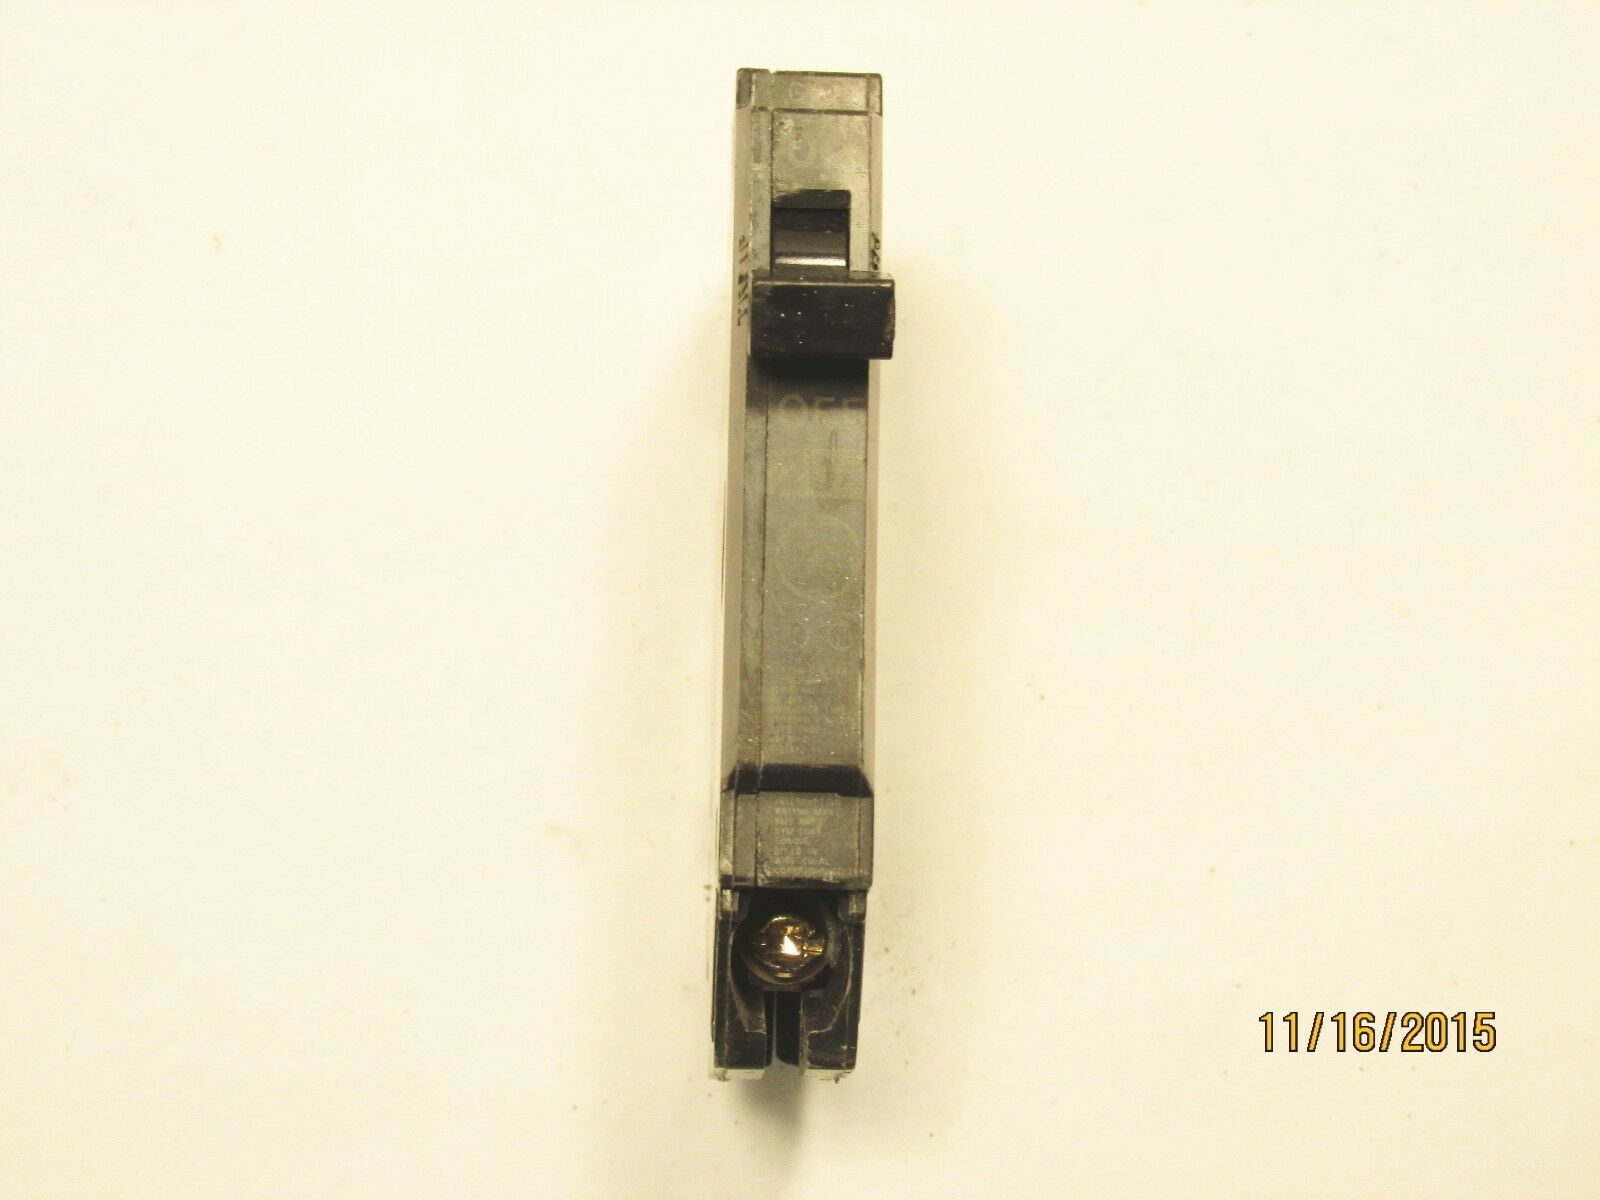 GENERAL ELECTRIC THQP120 1 Pole 20 Amp 120/240 Volt Circuit Breaker ...